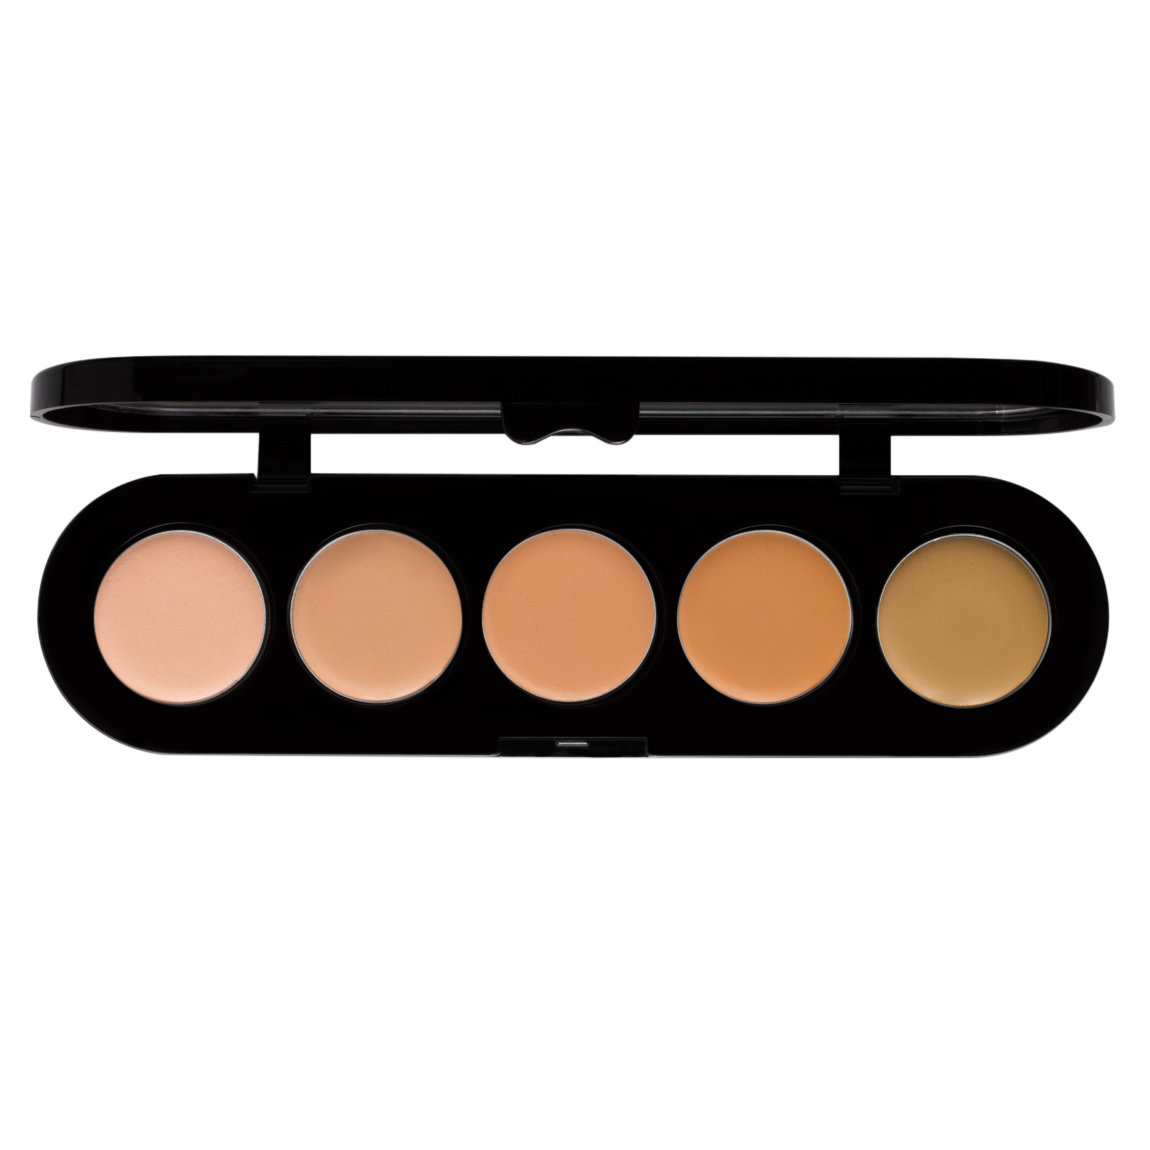 Make-Up Atelier Palette 5 Cream Concealers APJ product smear.